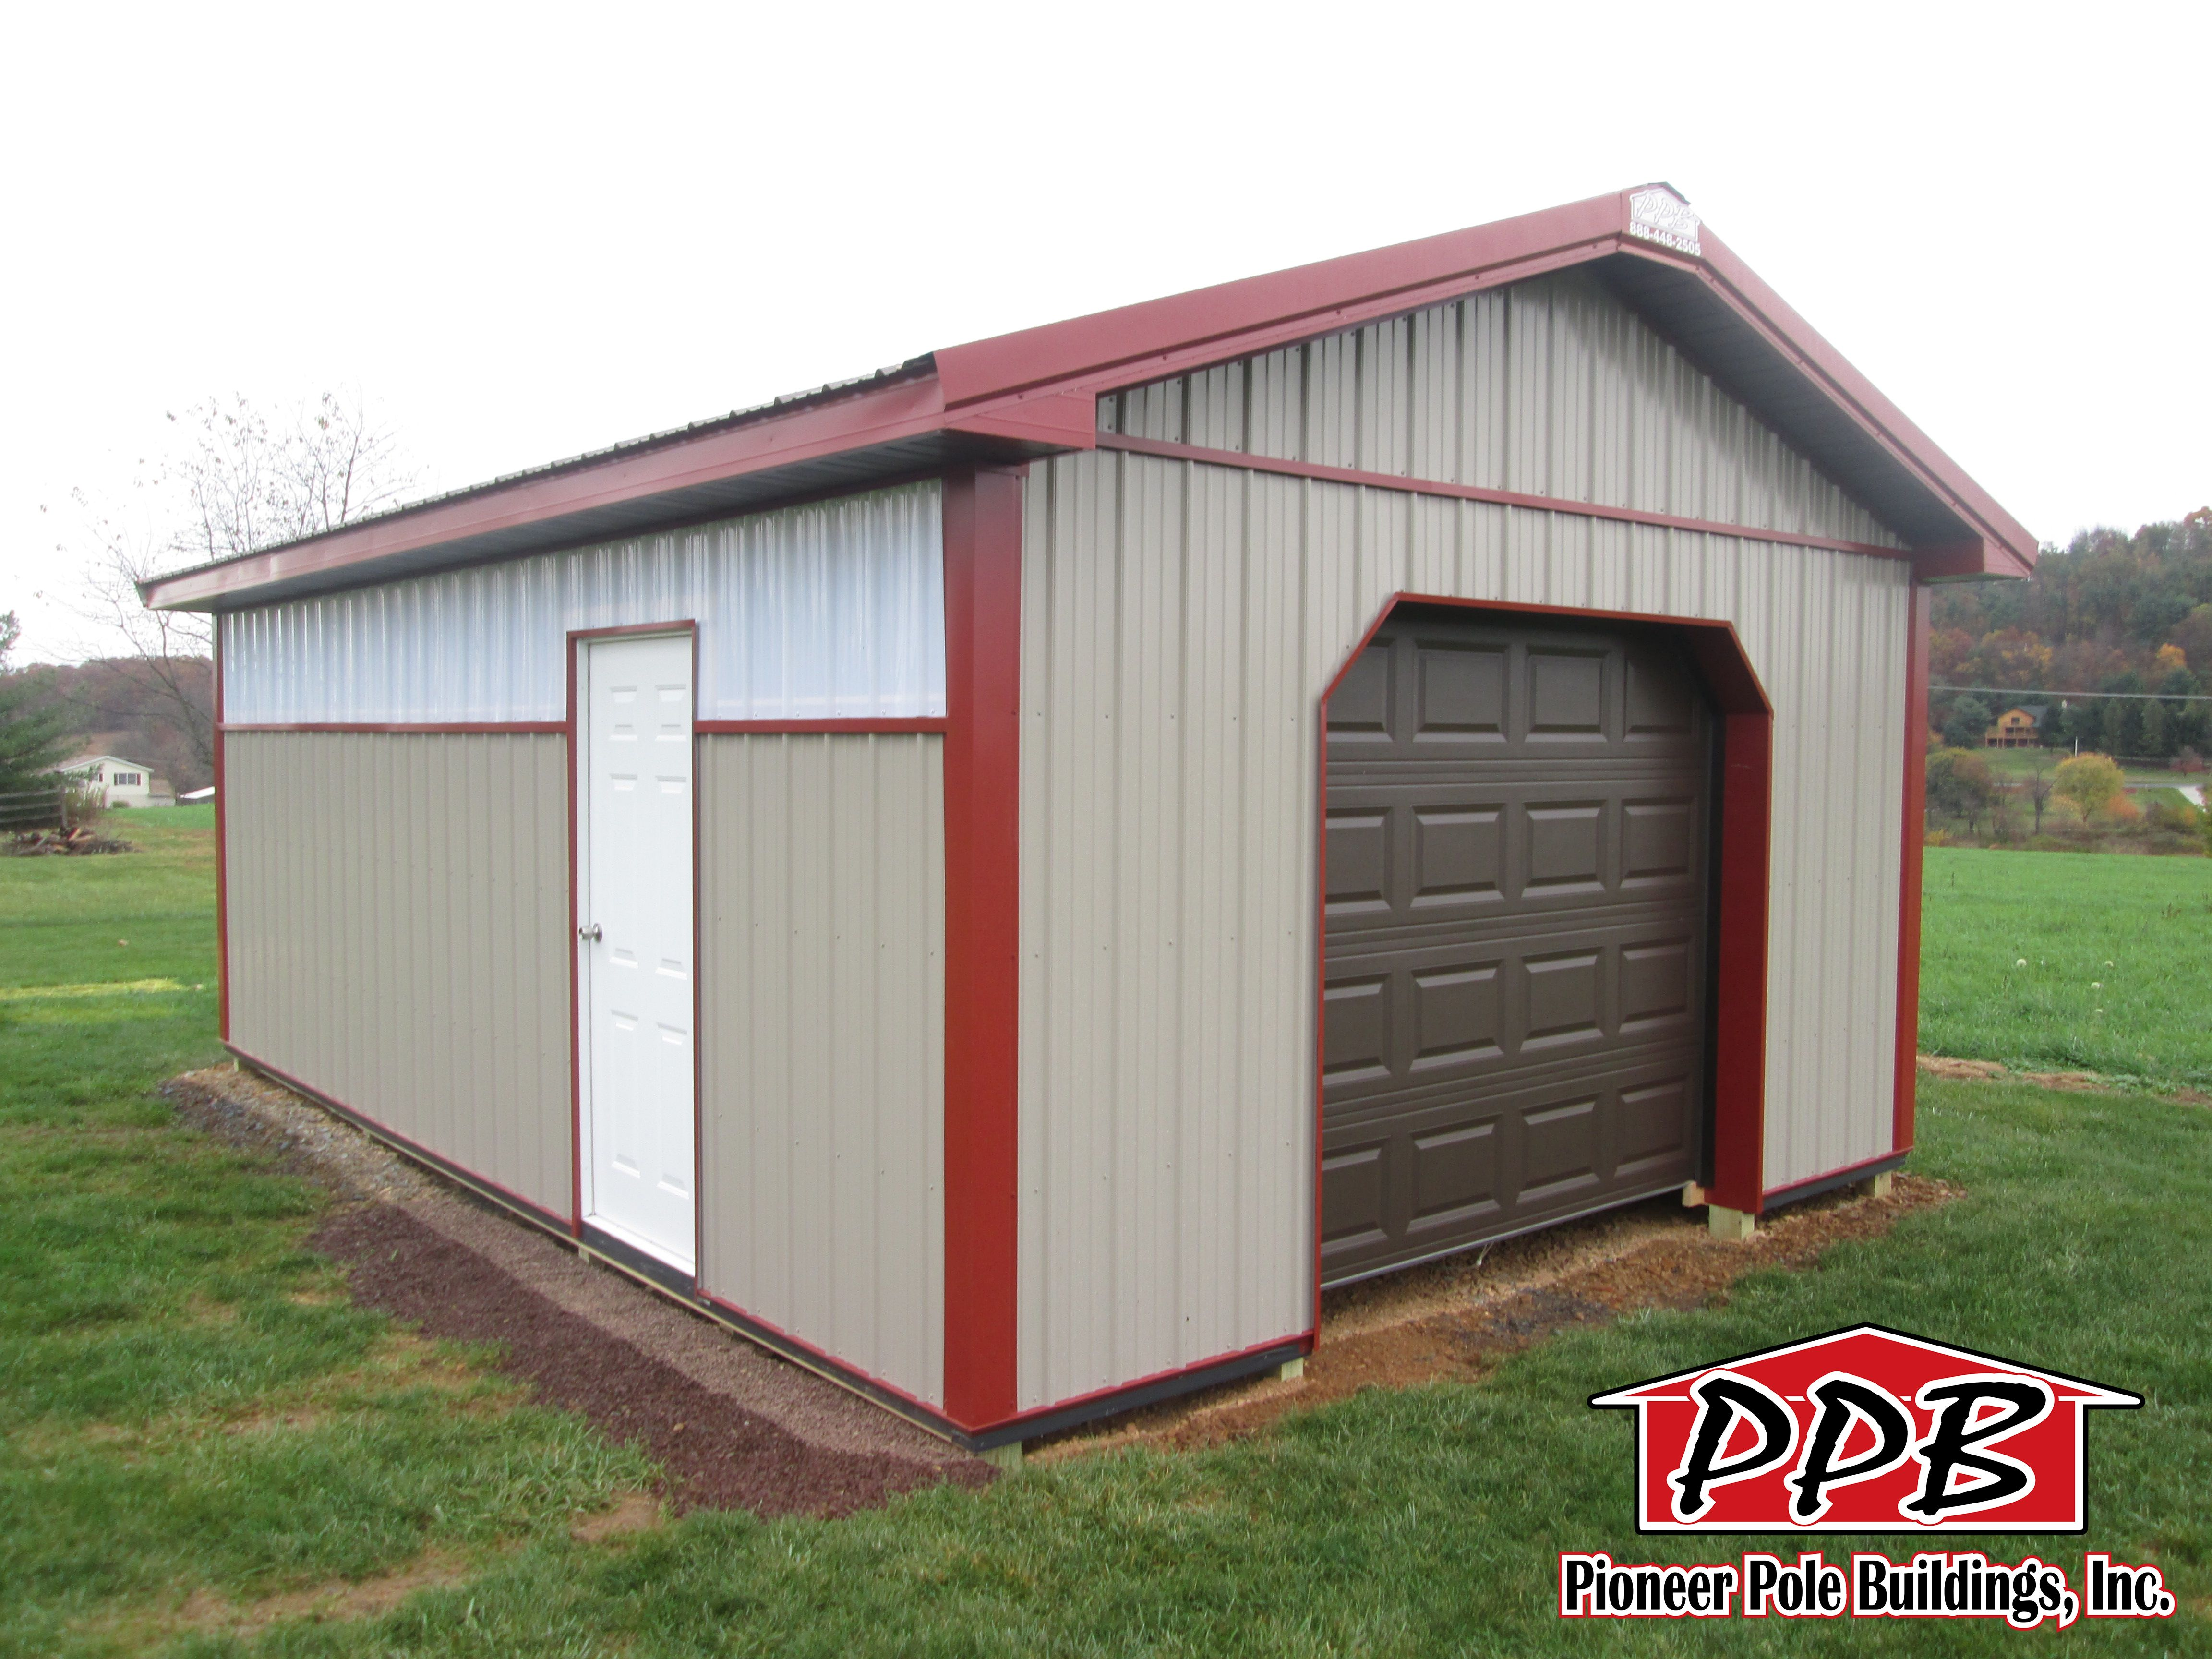 Dimensions 16 W X 24 L X 8 4 H 16 Standard Trusses 4 On Center 4 12 Pitch Colors Siding Color Clay Roo Roof Truss Design Roof Trusses Door Overhang